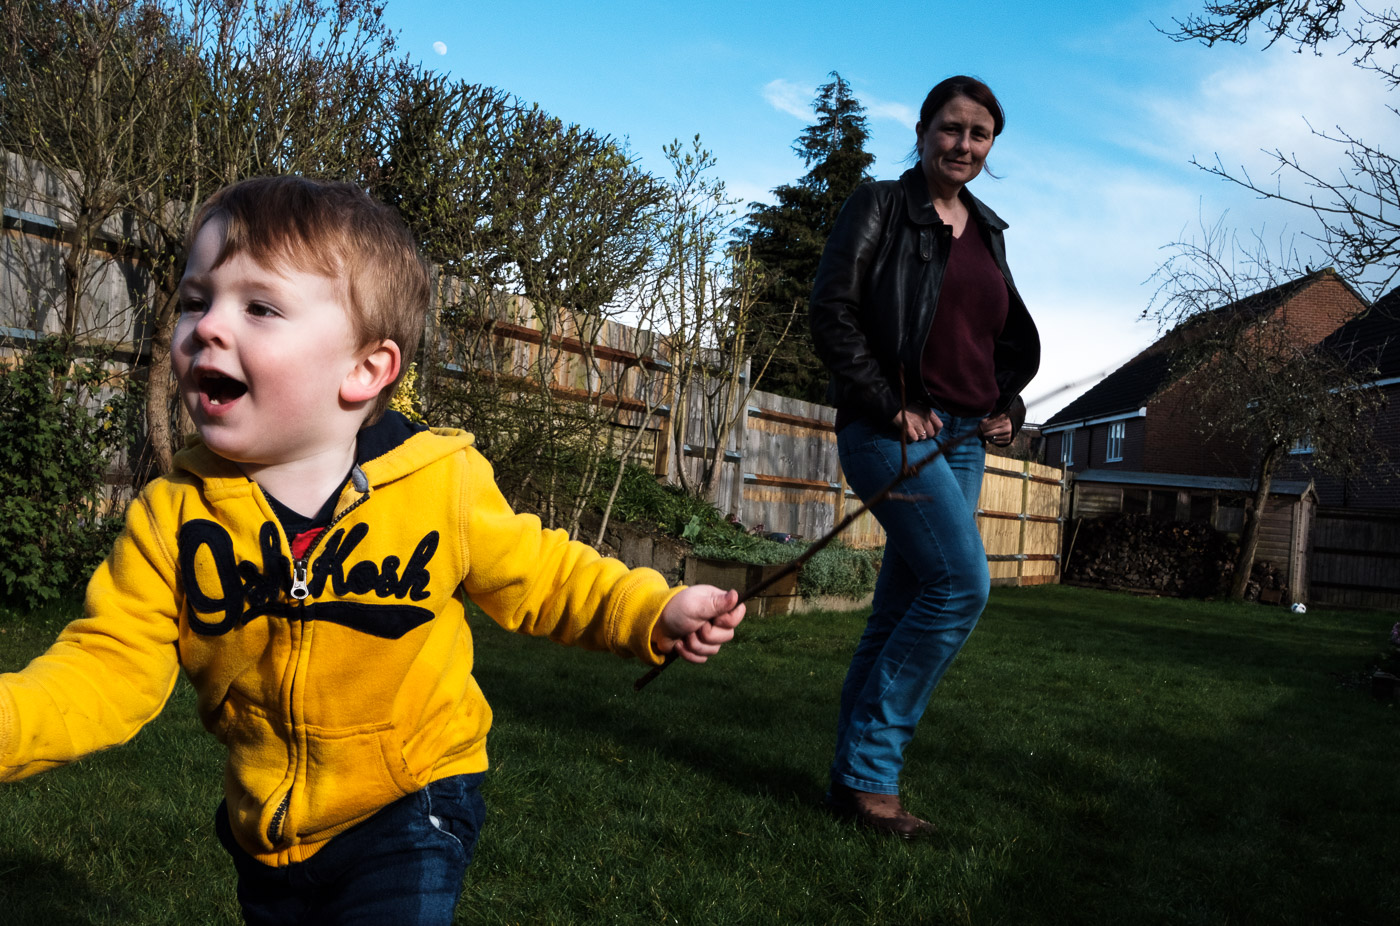 Boy running and smiling in the garden with mum watching